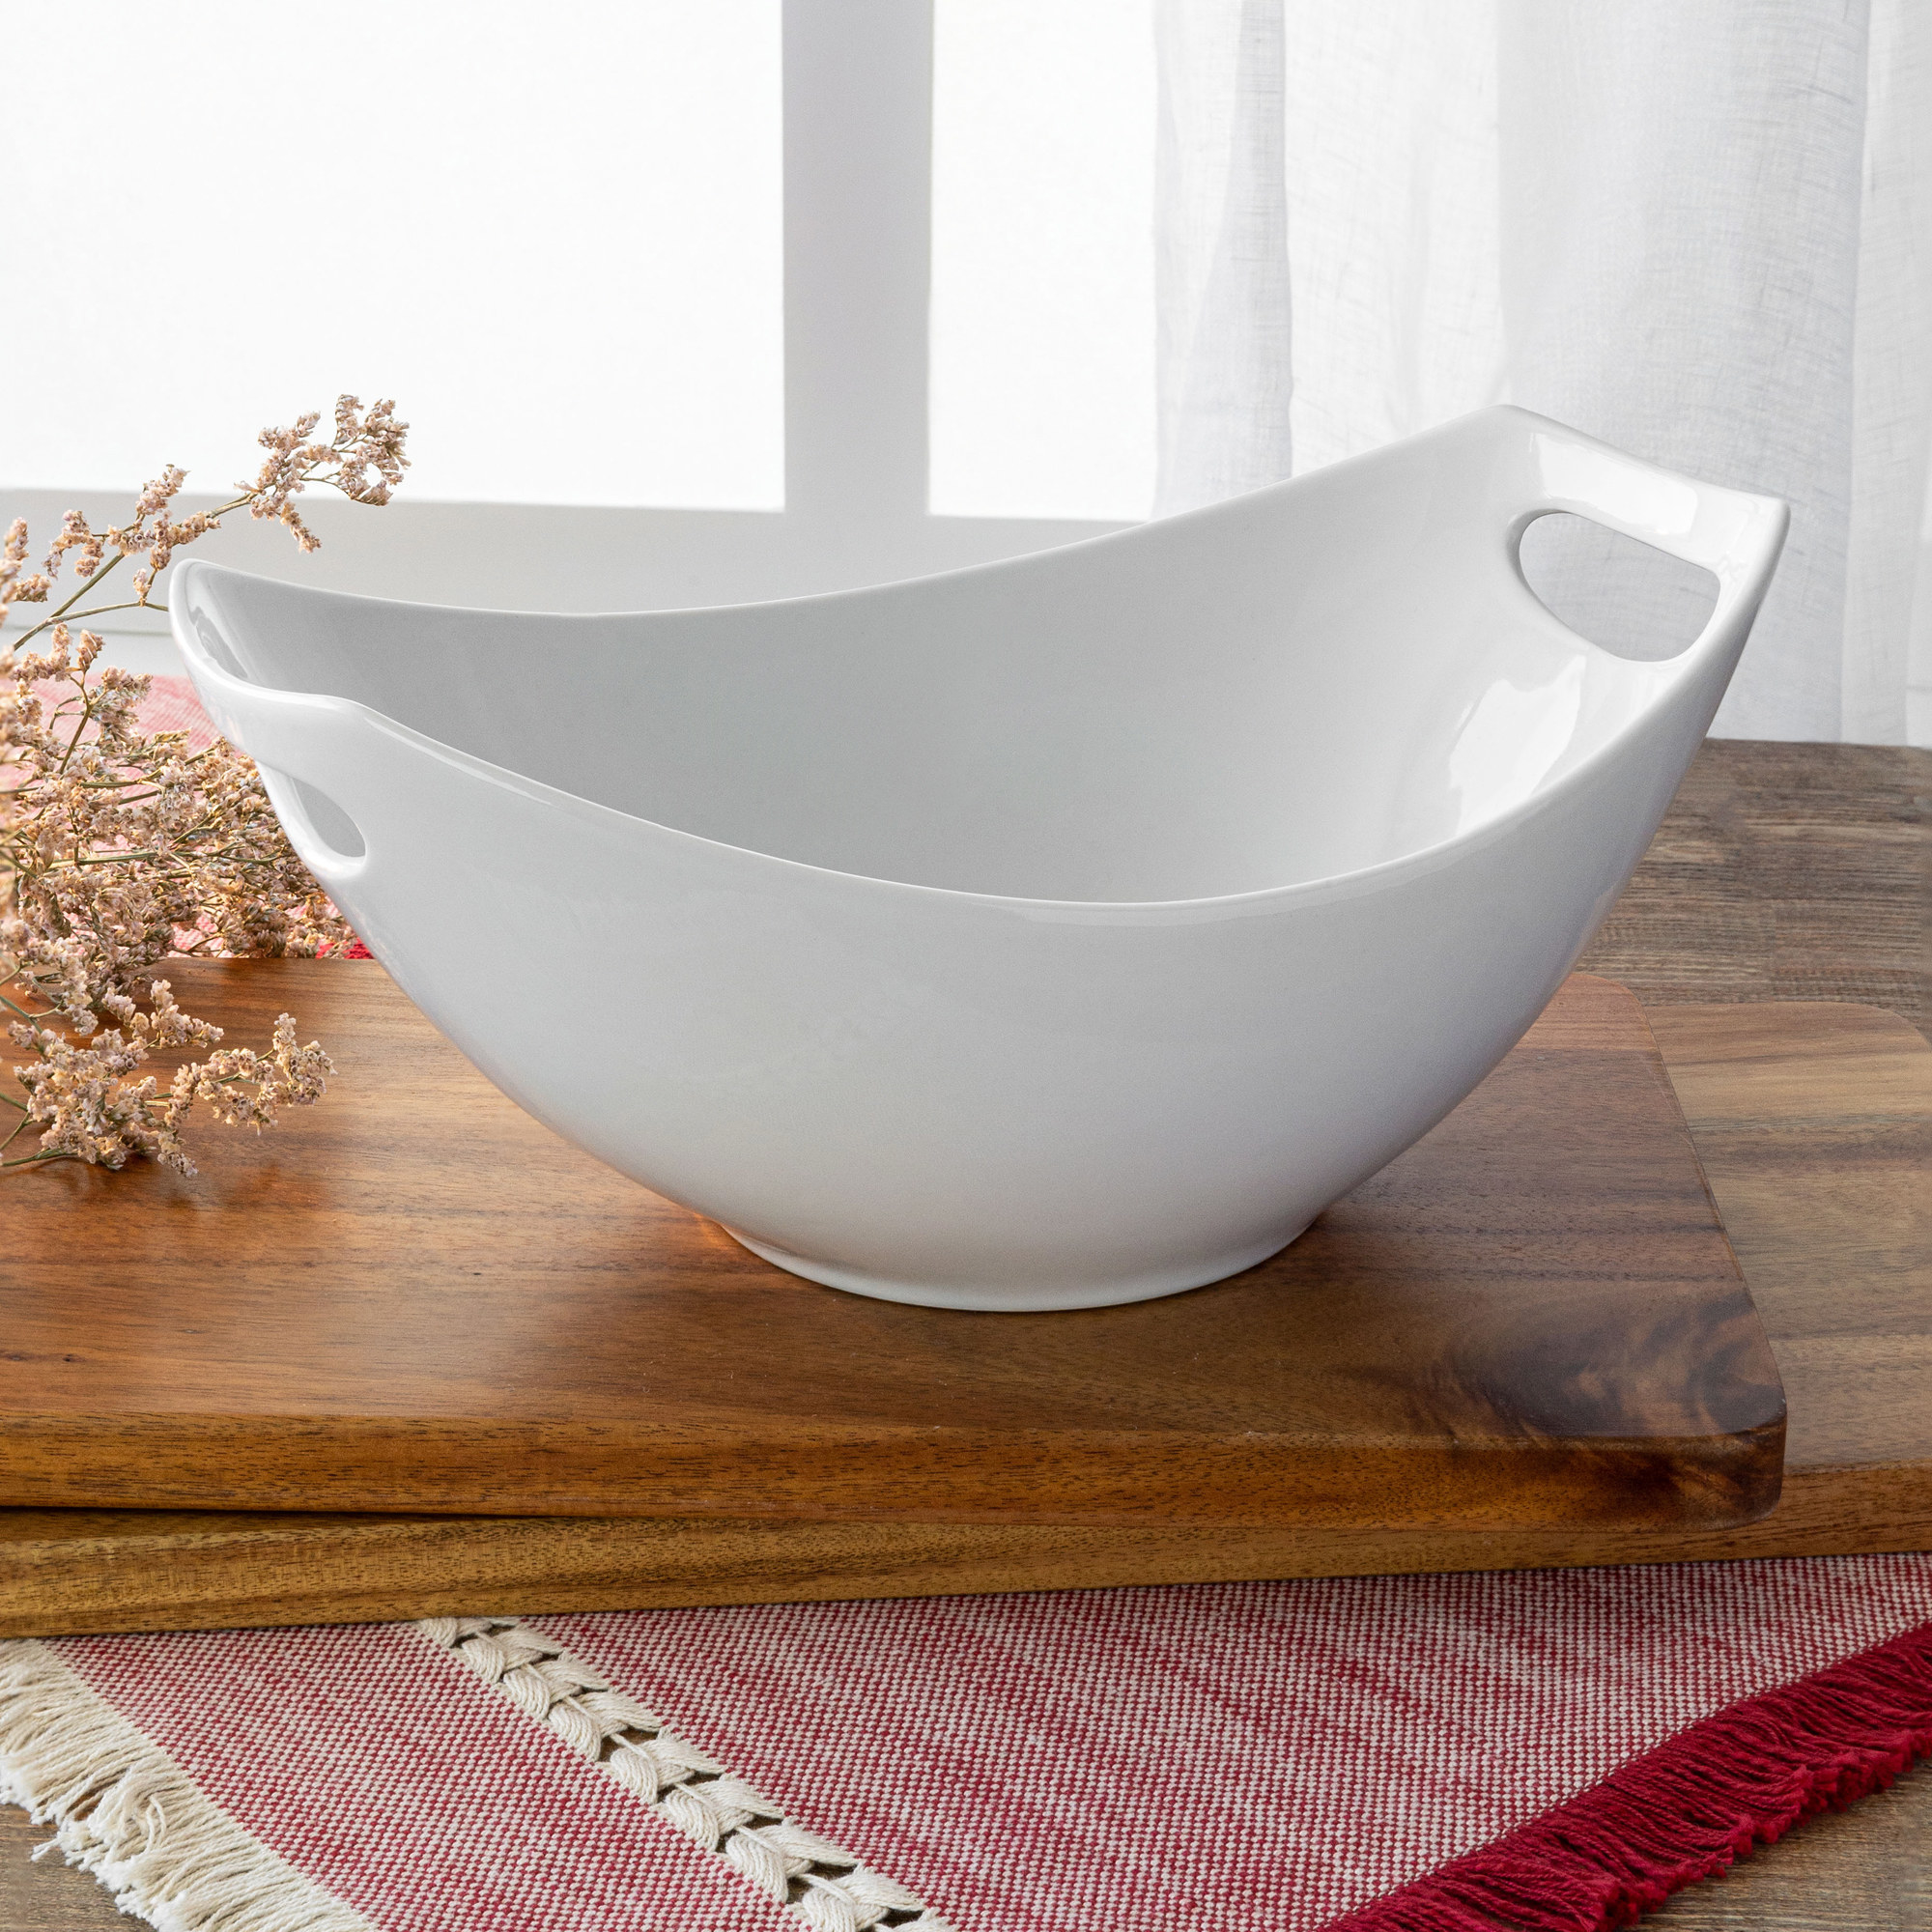 The white porcelain large bowl on a wood tray